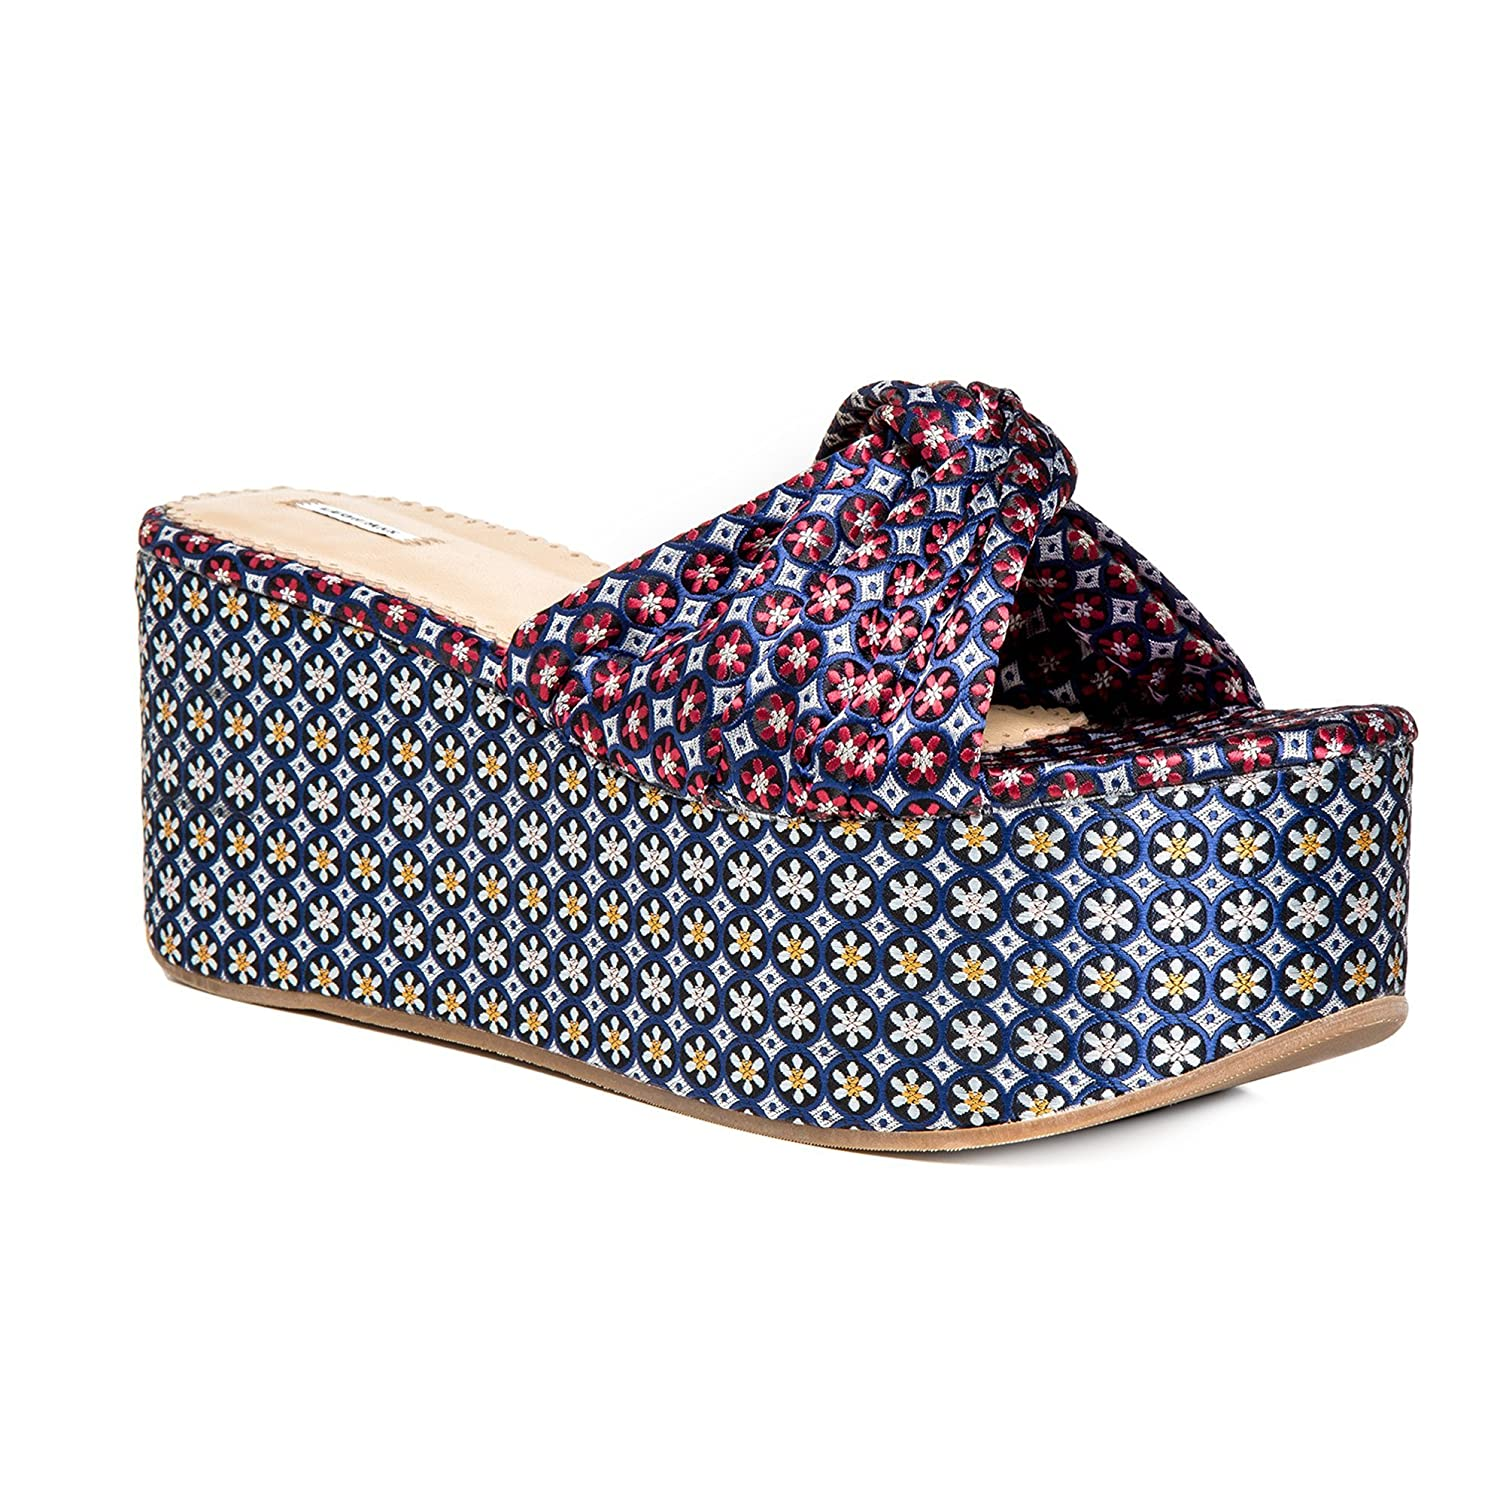 Divert : Jacquard Platform Slip-On Sandals B07CMHC5RT 7.5|Navy / Red